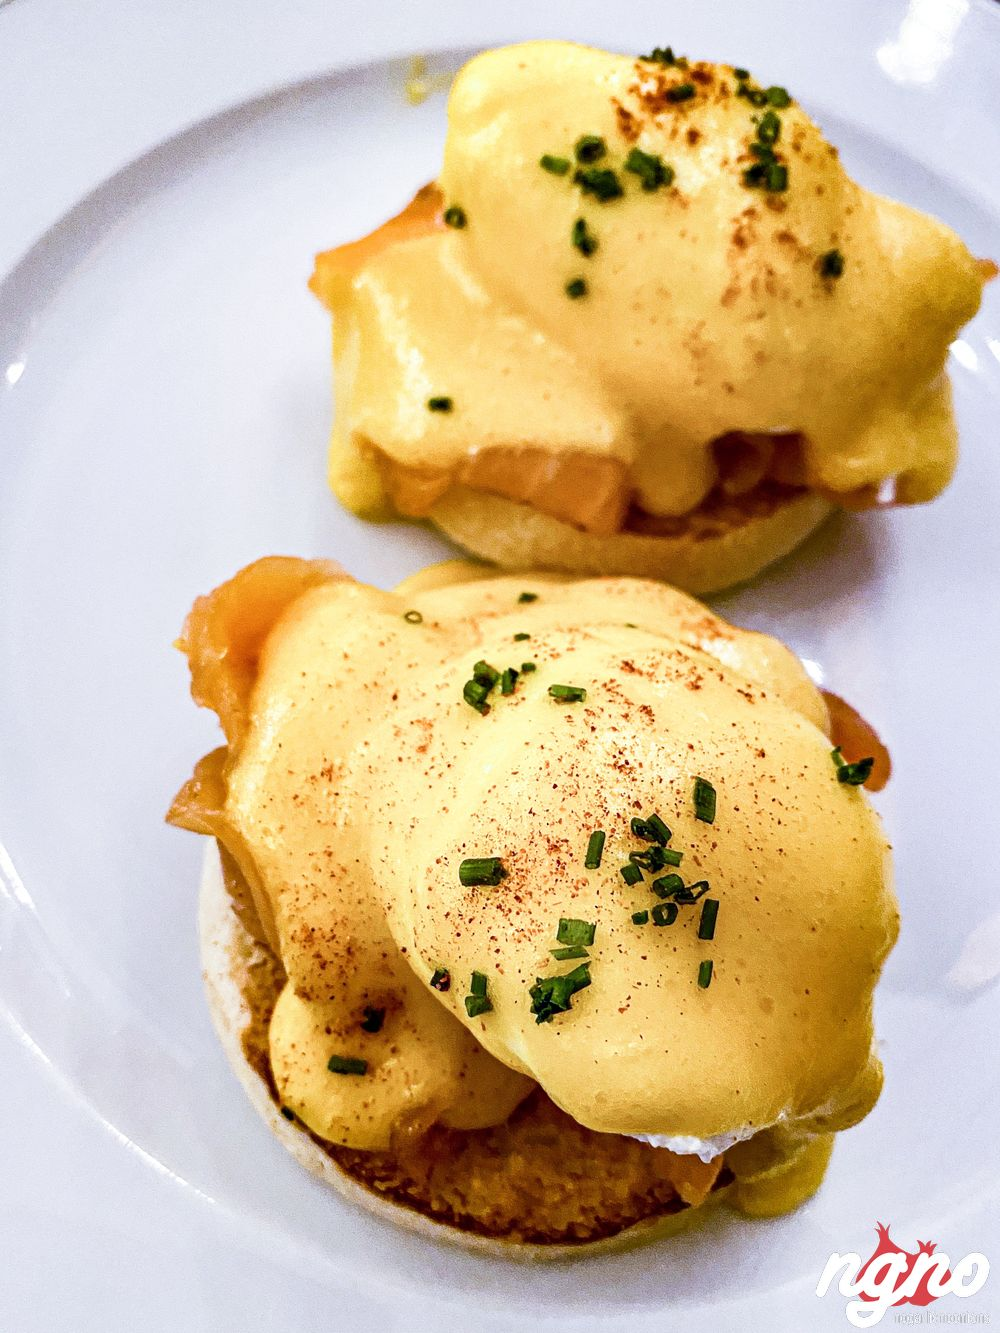 rosewood-breakfast-restaurant-london-nogarlicnoonions-582019-12-19-08-21-23